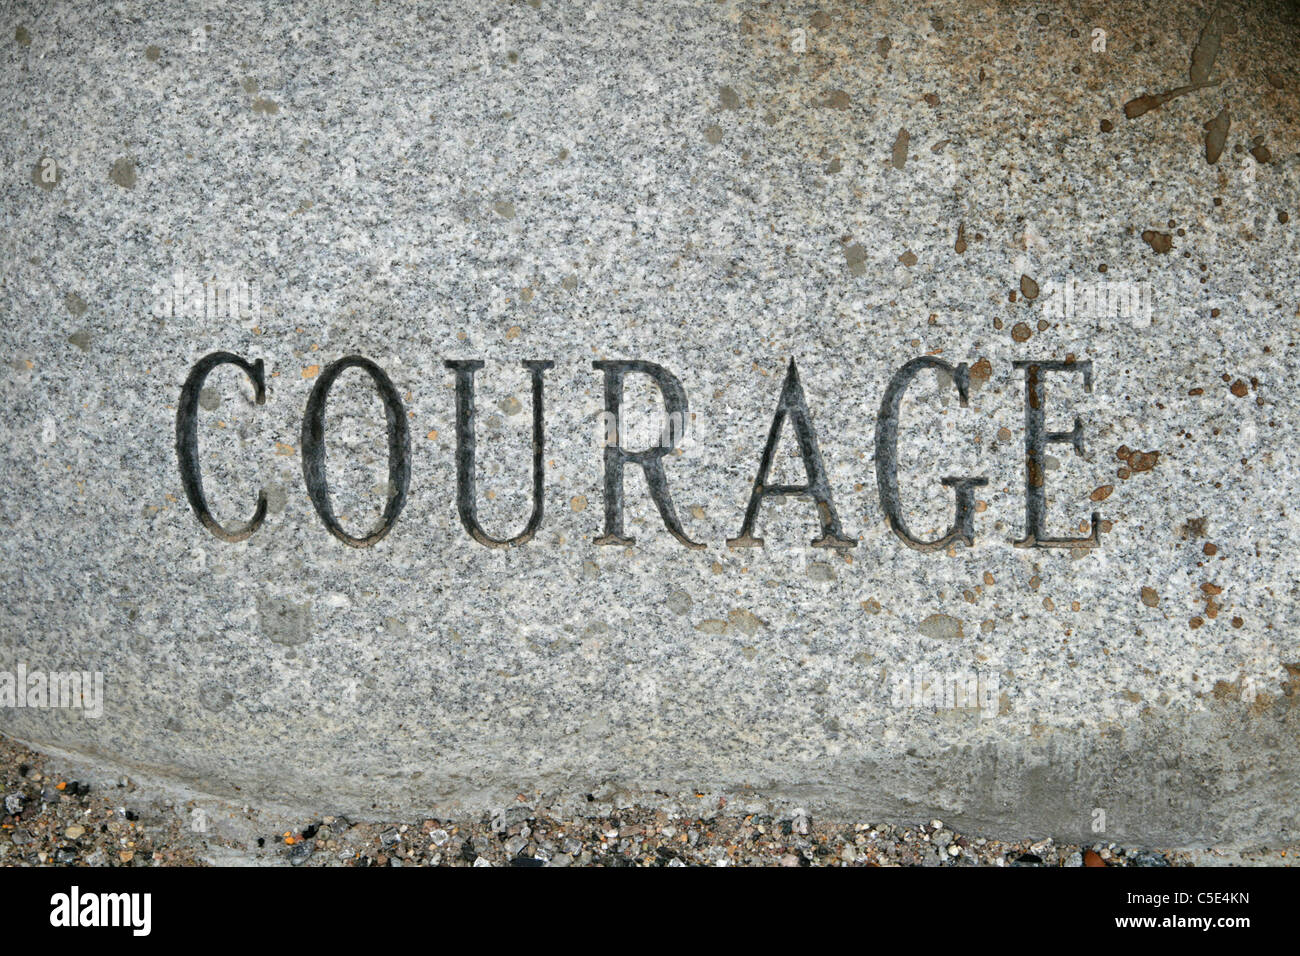 the word courage carved onto a granite cobble stone - Stock Image